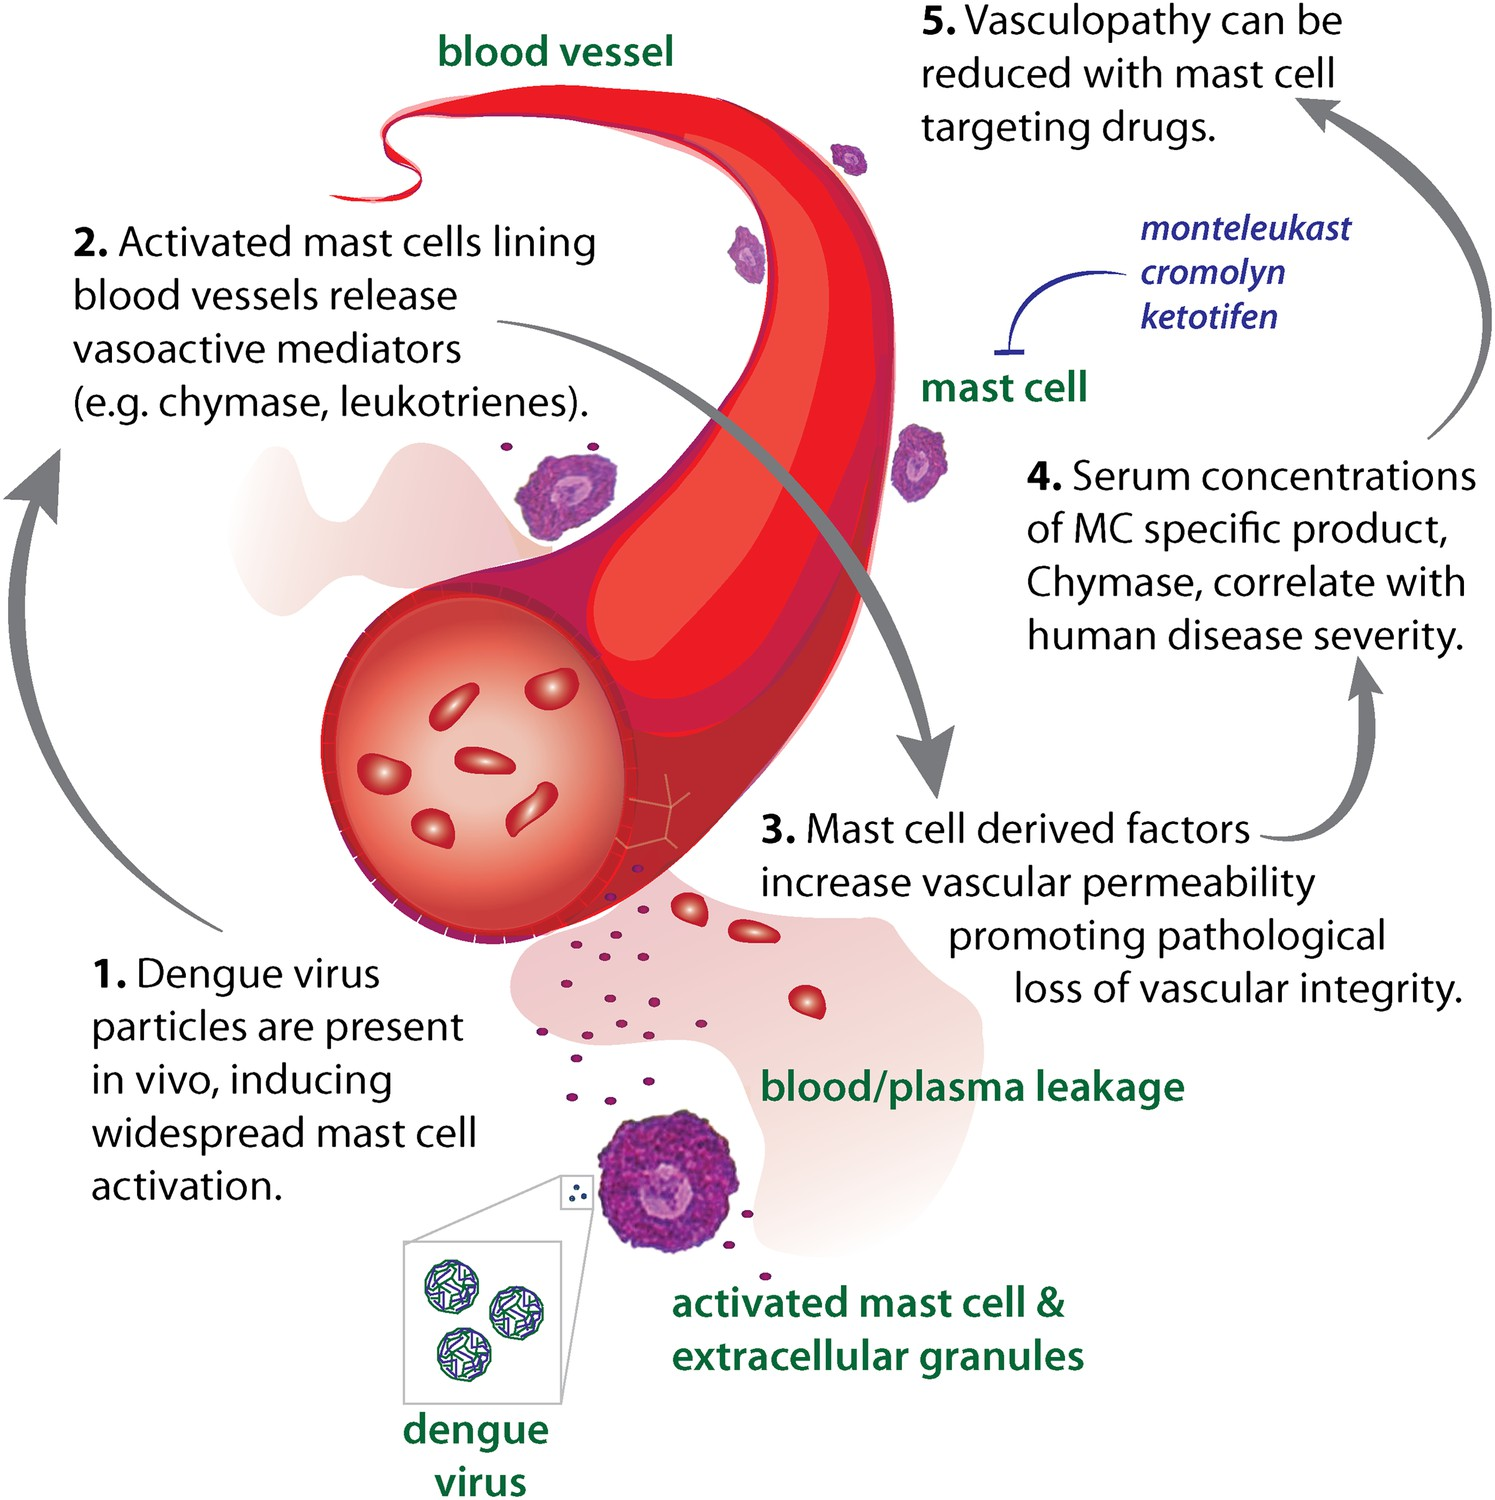 Contributions of mast cells and vasoactive products, leukotrienes